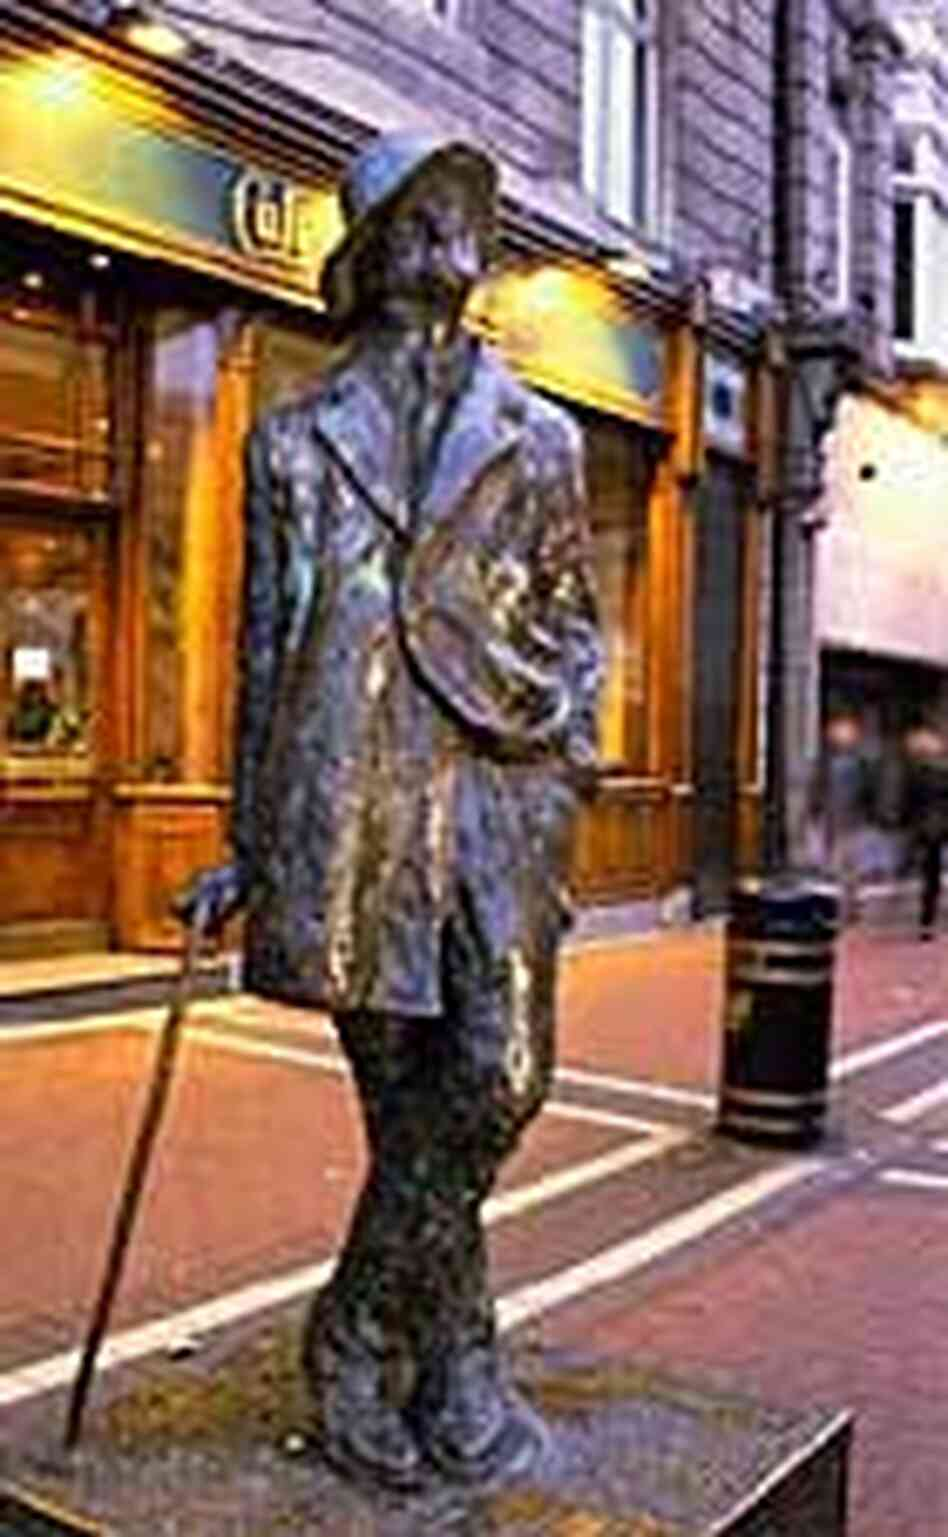 The famed Marjorie Fitzgibbon statue of James Joyce on O'Connell Street in Dublin, Ireland